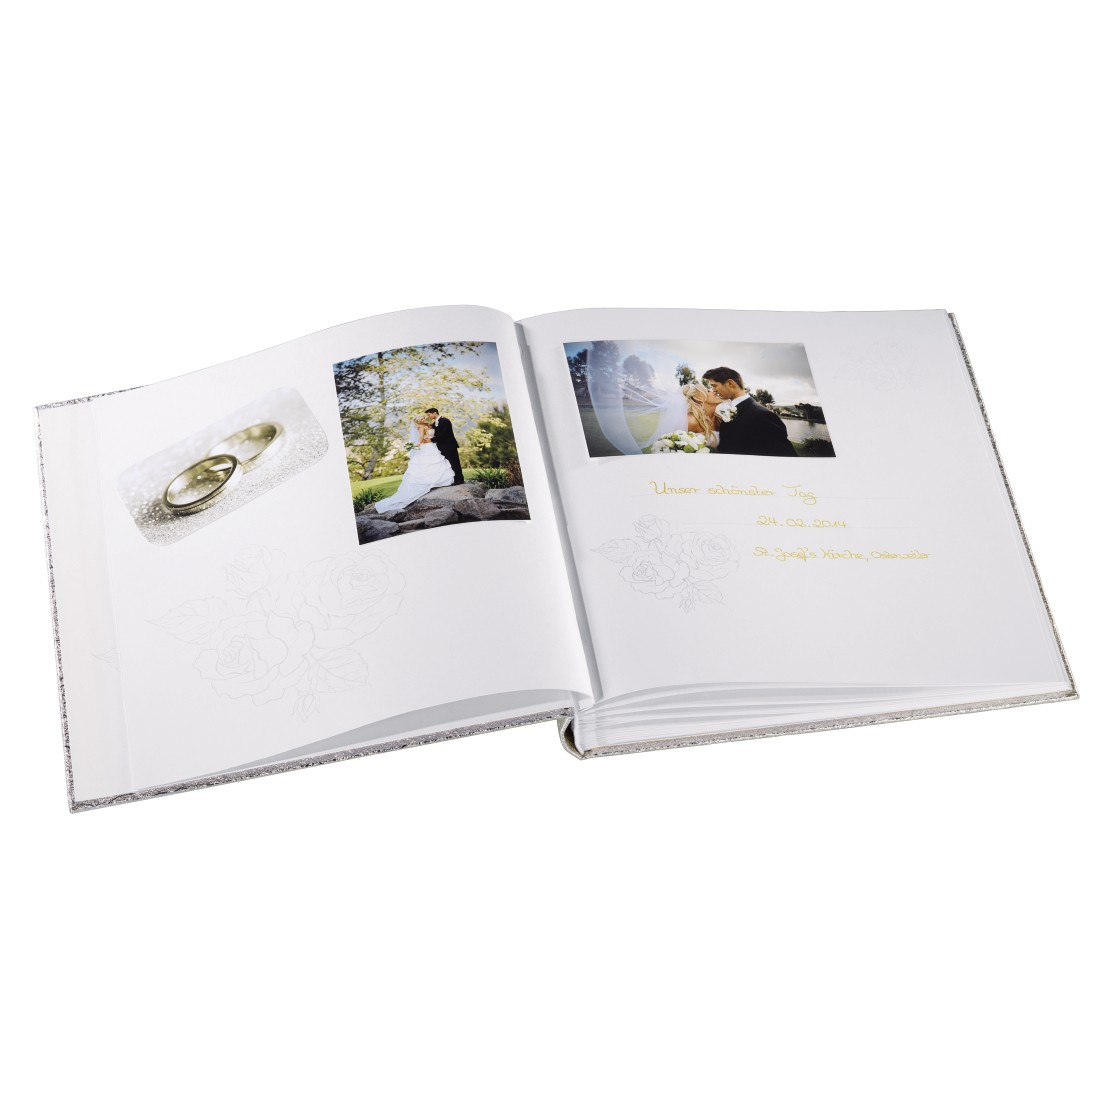 "awx2 High-Res Appliance 2 - Hama, ""Caracas"" Bookbound Album, 29x32 cm, 50 white pages, silver"